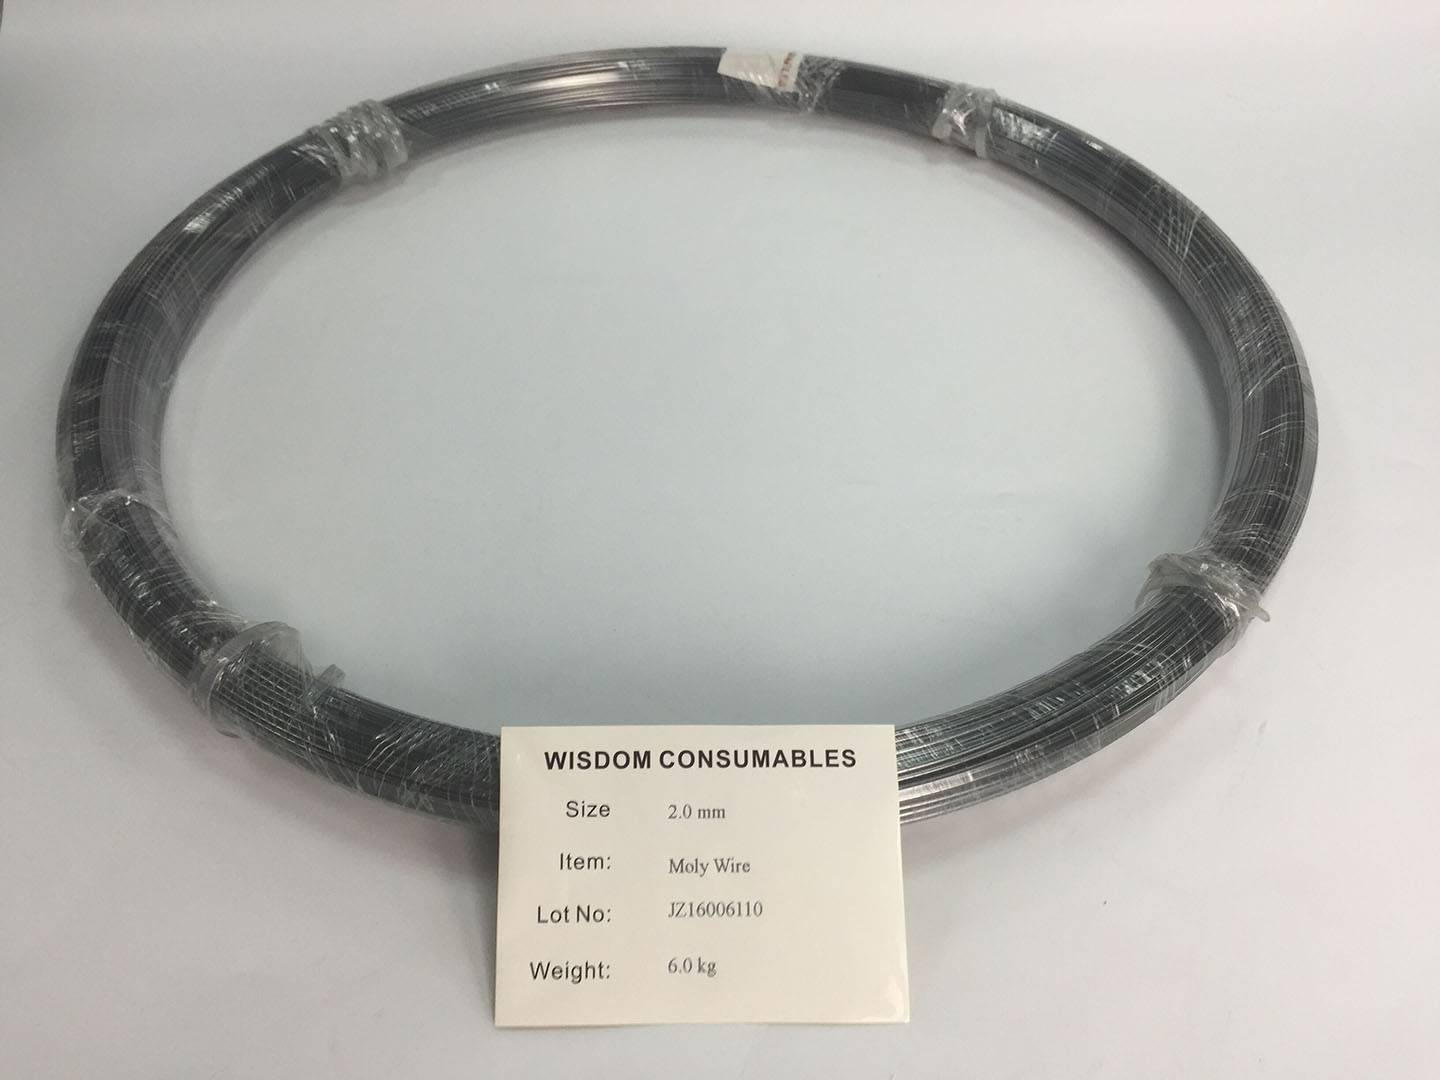 Molybdenum wires for thermal spraying, equal to TAFA 13T, Metco Spraybond